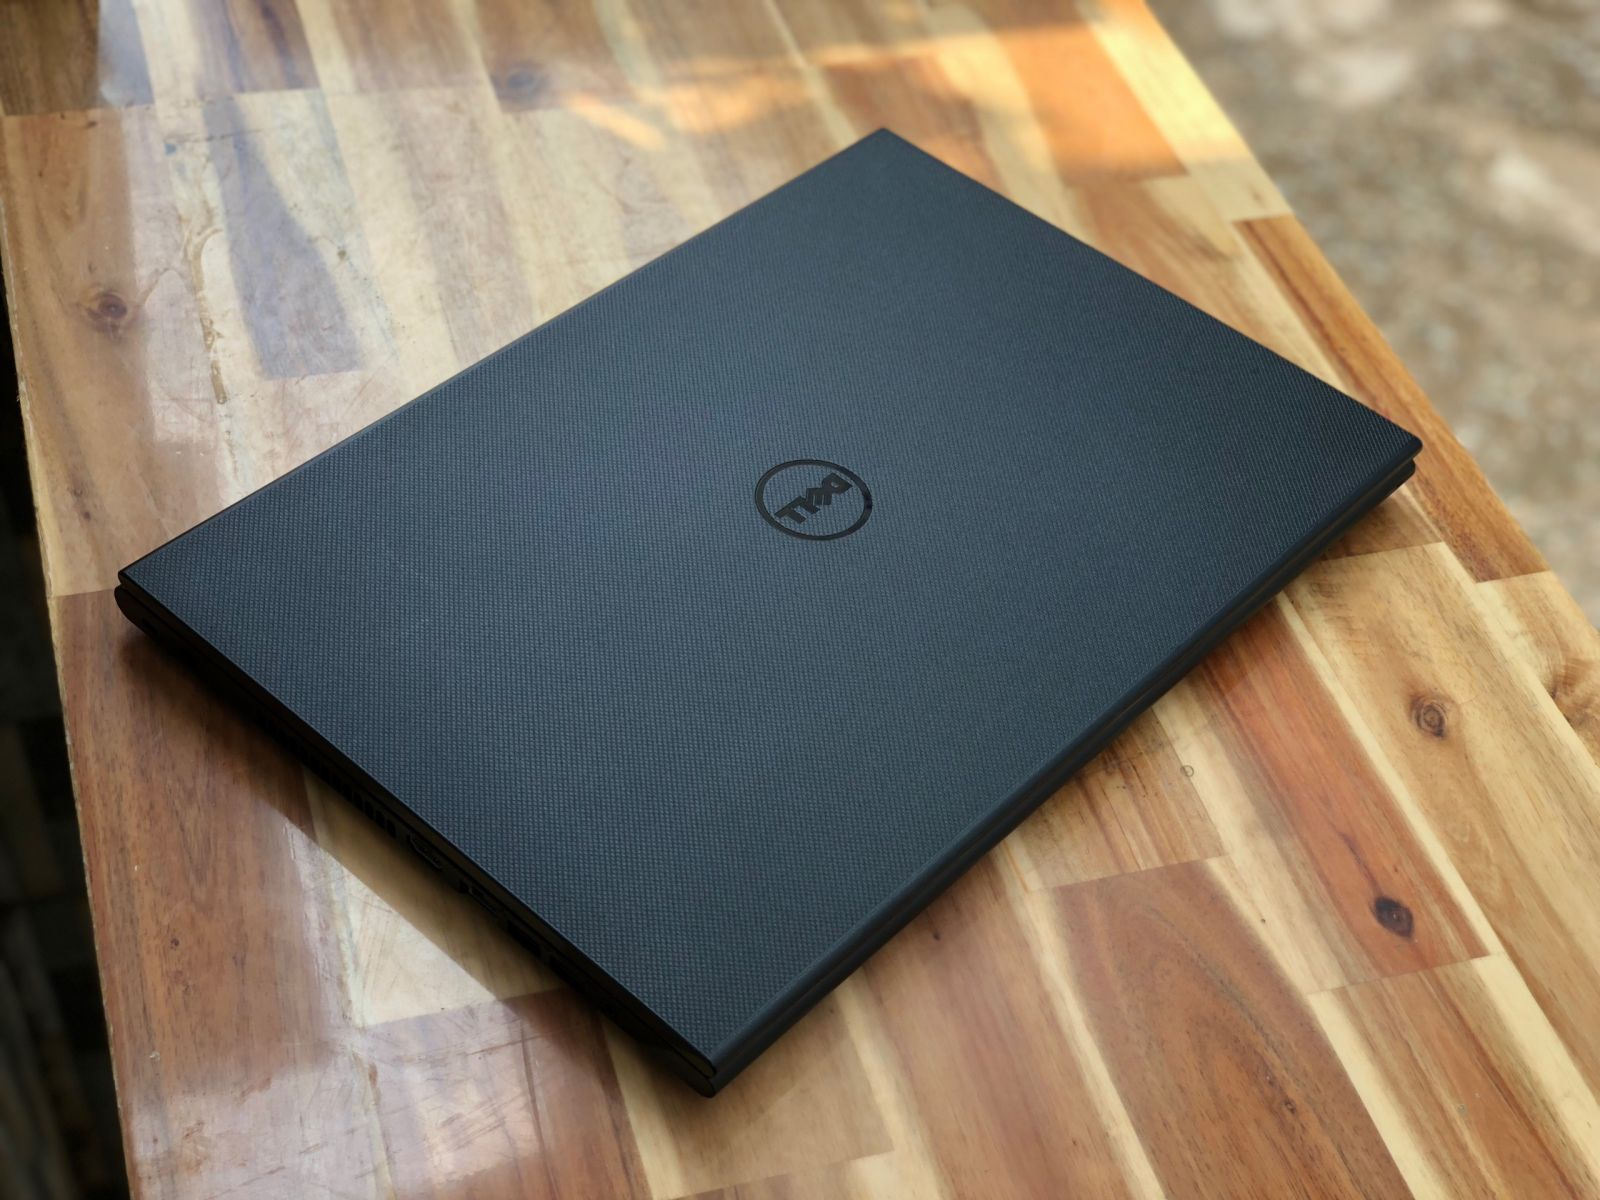 Dell inspiron 15- 3543 | Core i5-5200U | Ram 4G | Ổ 500G | Màn 15 6 | HD  |Nvidia Geforce 820M (2gb)